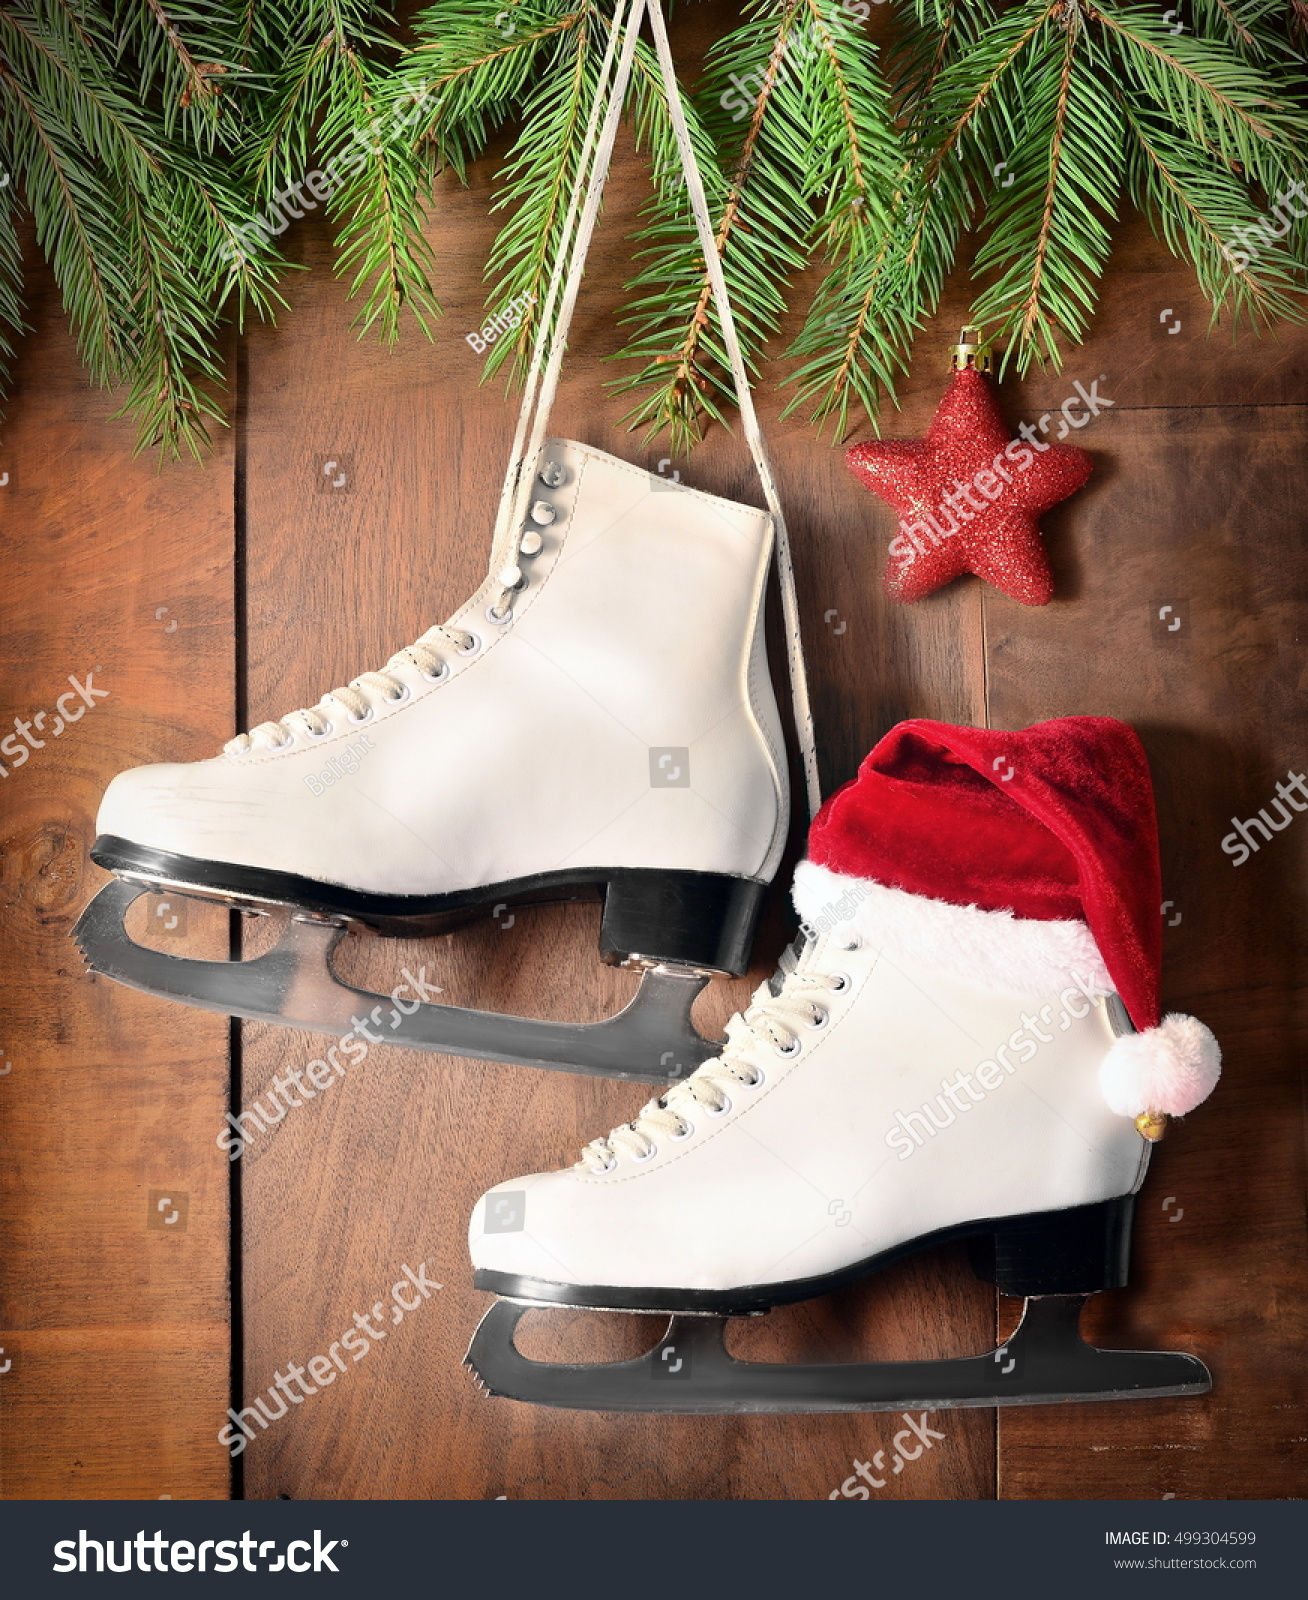 christmas decoration white ice skates for figure skating hanging on a wooden background